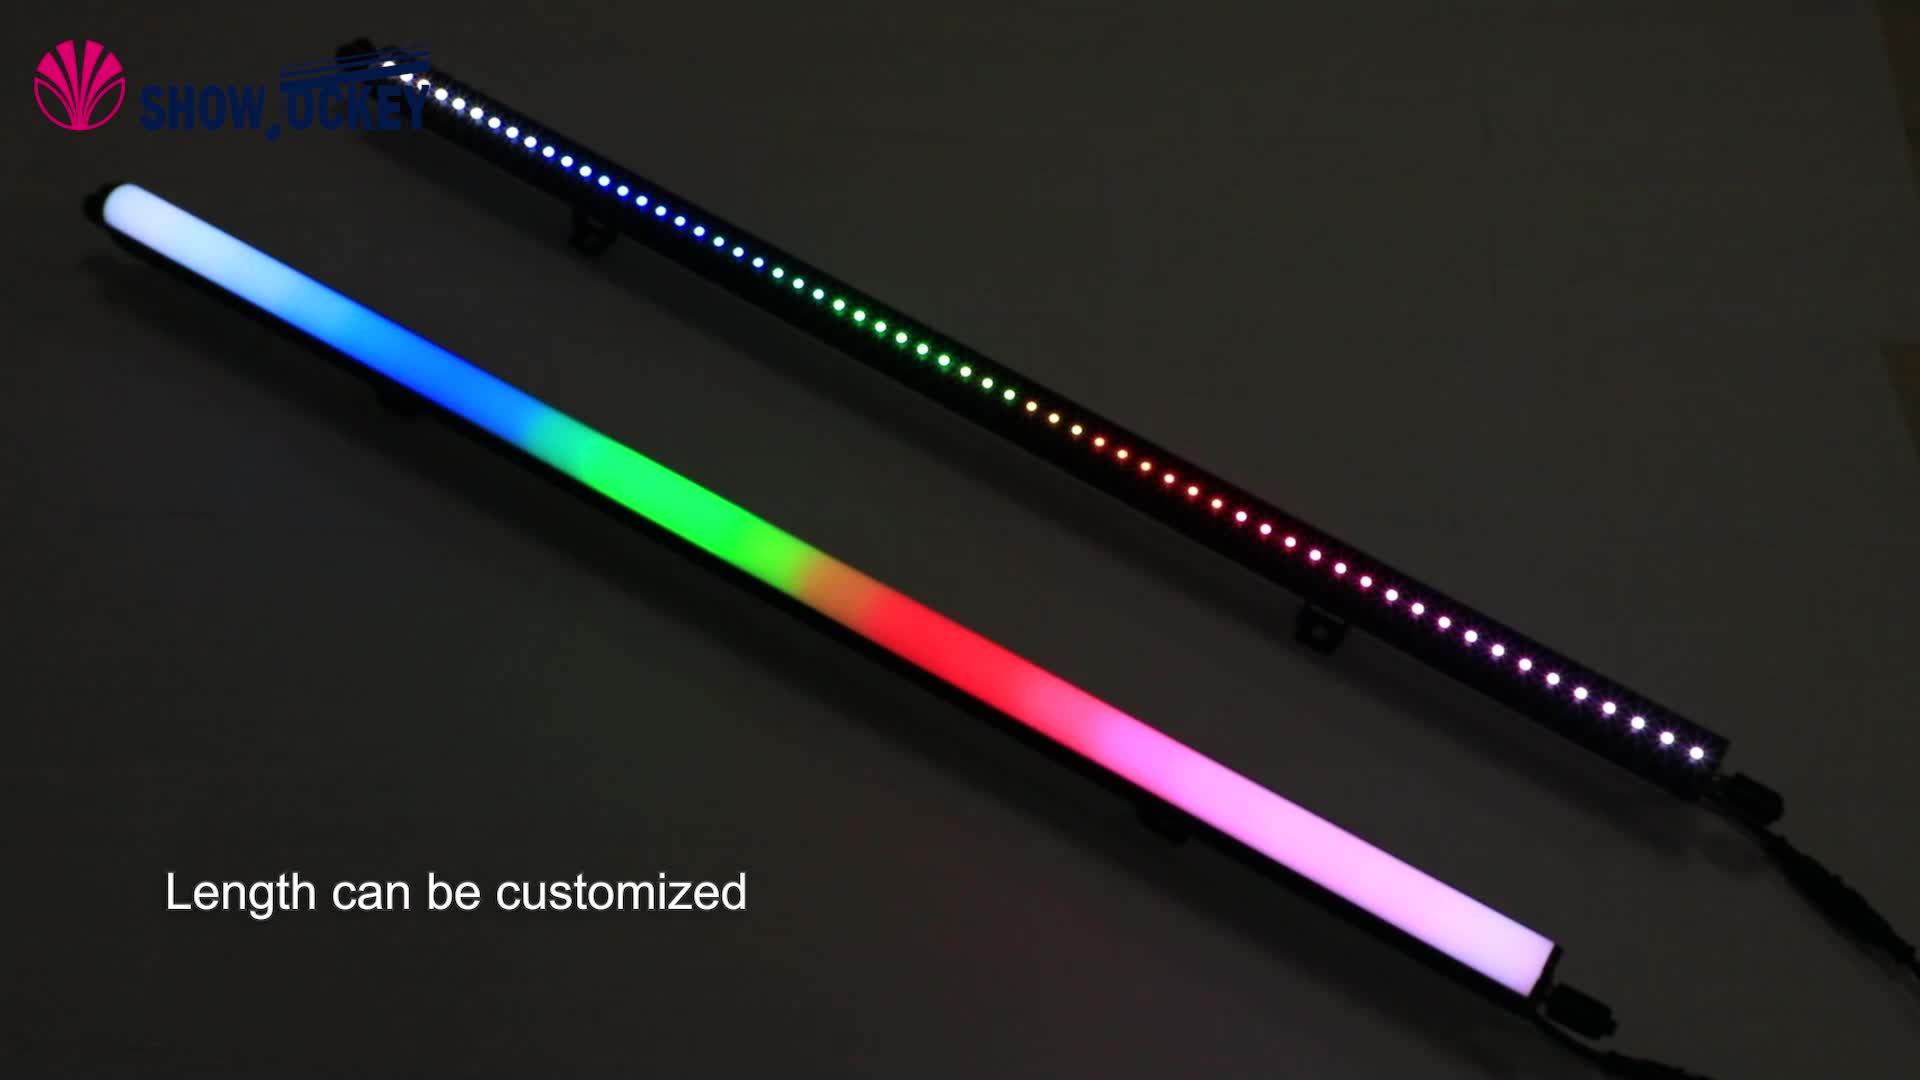 Dimmable DC24V 1M RGB 3528 SMD LED Light Strip Bar 5050 addressable rgb led strip